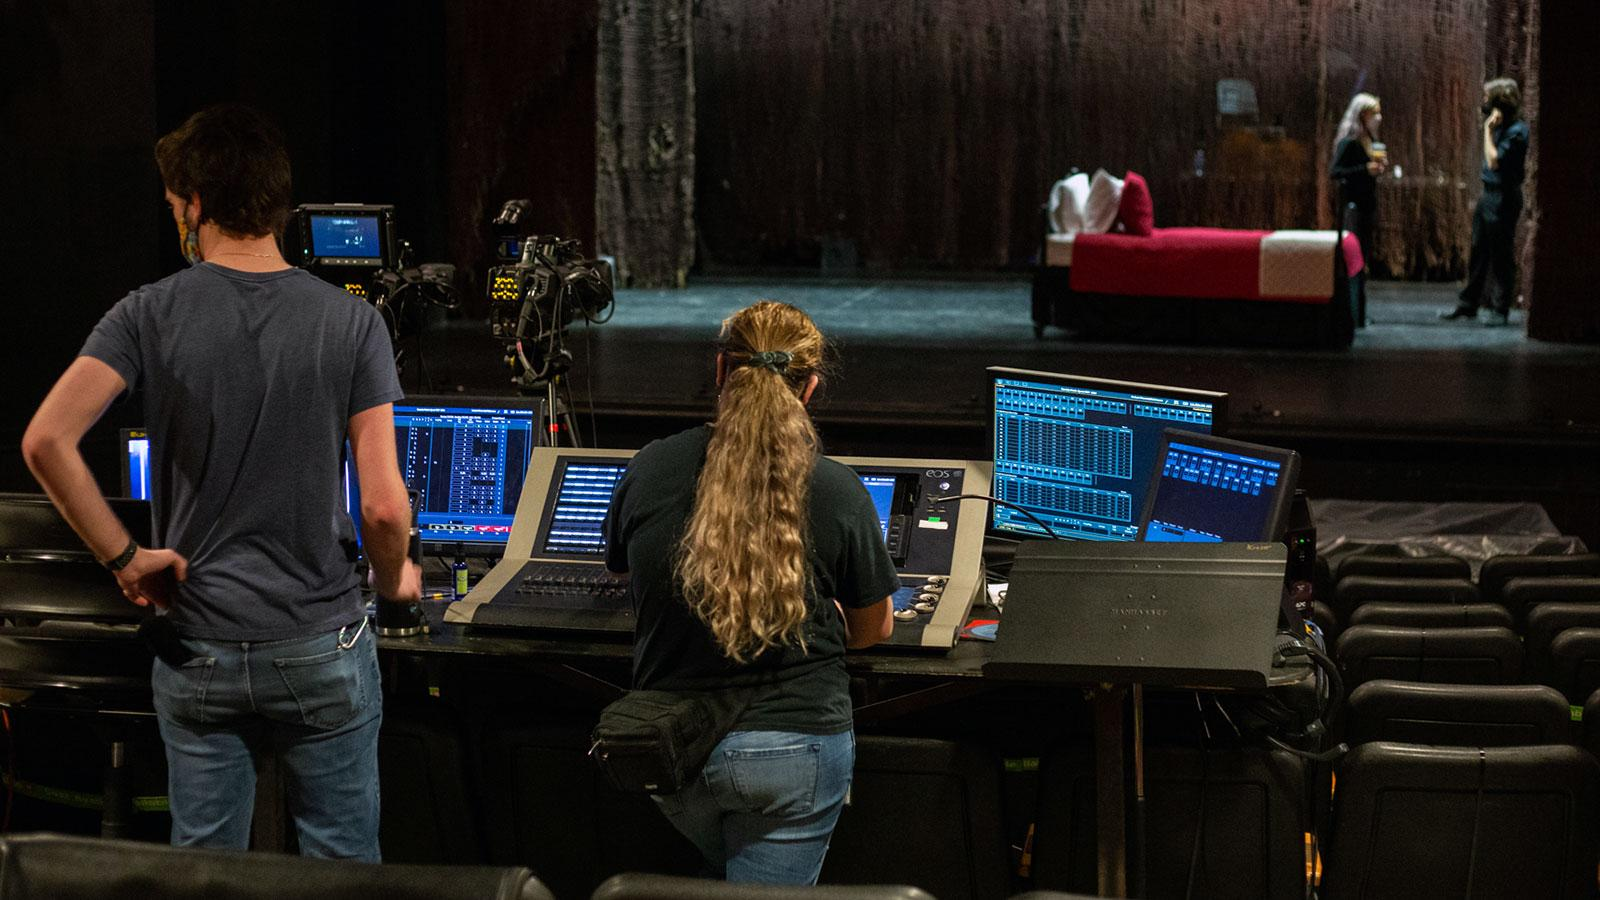 two design tech students work behind the scenes on audio while actors are on stage